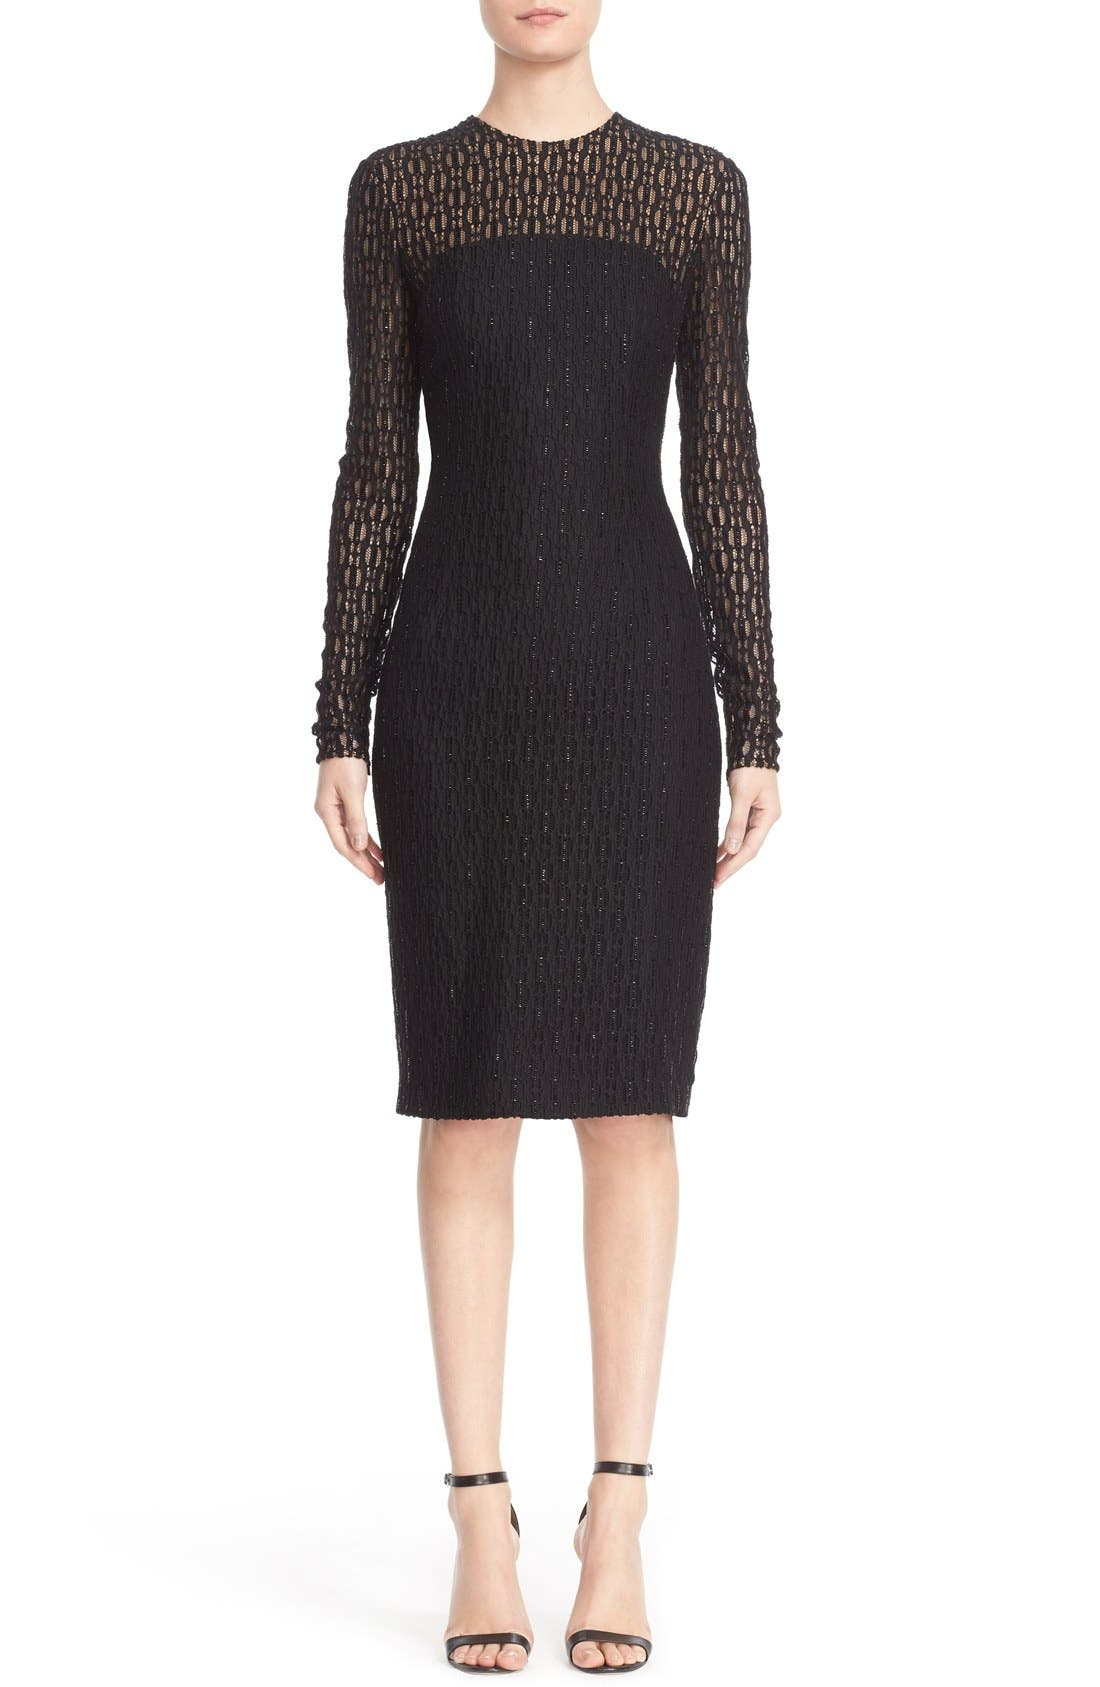 Main Image - Carmen Marc Valvo Couture Embellished Illusion Lace Knit Sheath Dress